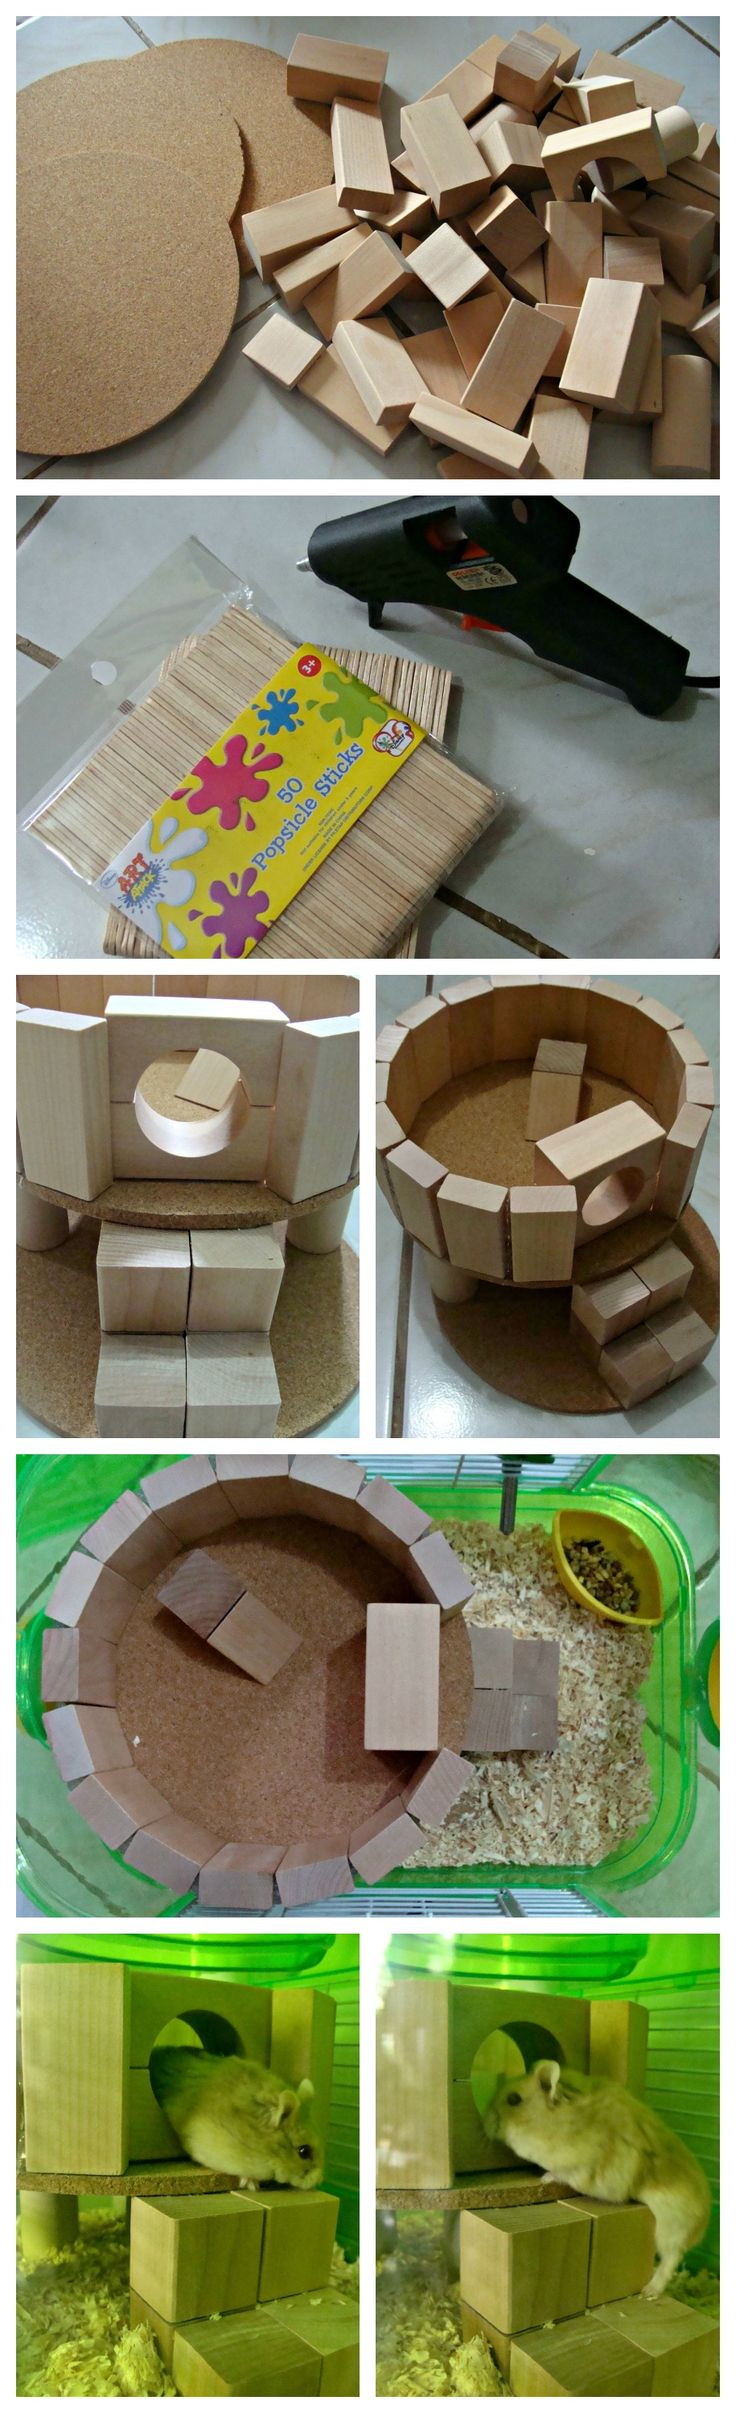 DIY Hamster Play House. Bought the wooden blocks from the flea market. The cork pot holders and popsicle sticks from a local store. Glue them all away and now Mr. Bilbo Baggins and Ms. Hammie Roo have a new house. *wink*